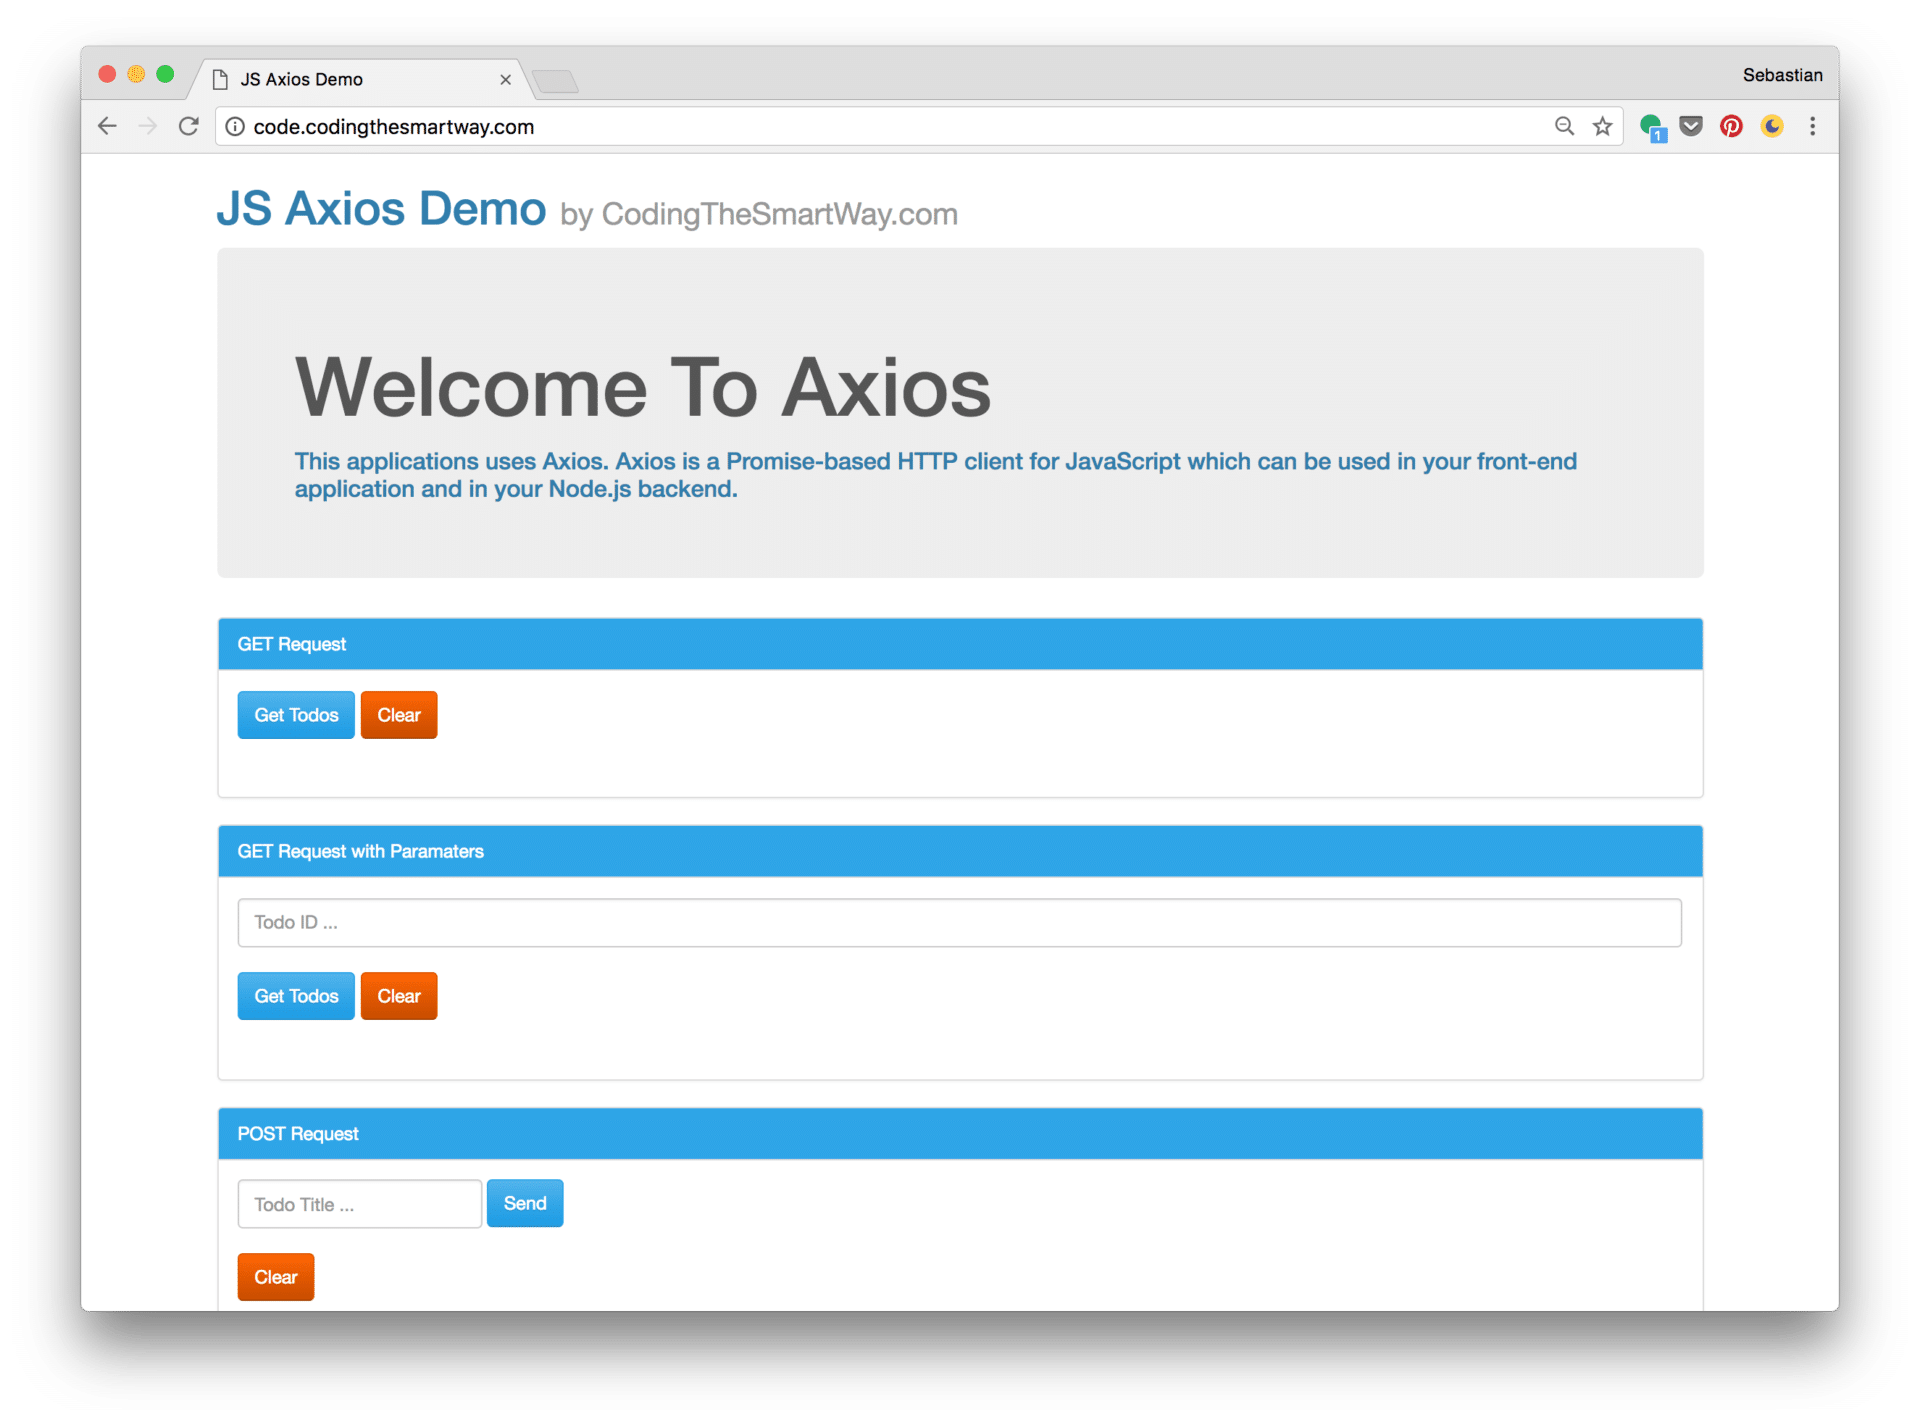 Getting Started With Axios - CodingTheSmartWay com